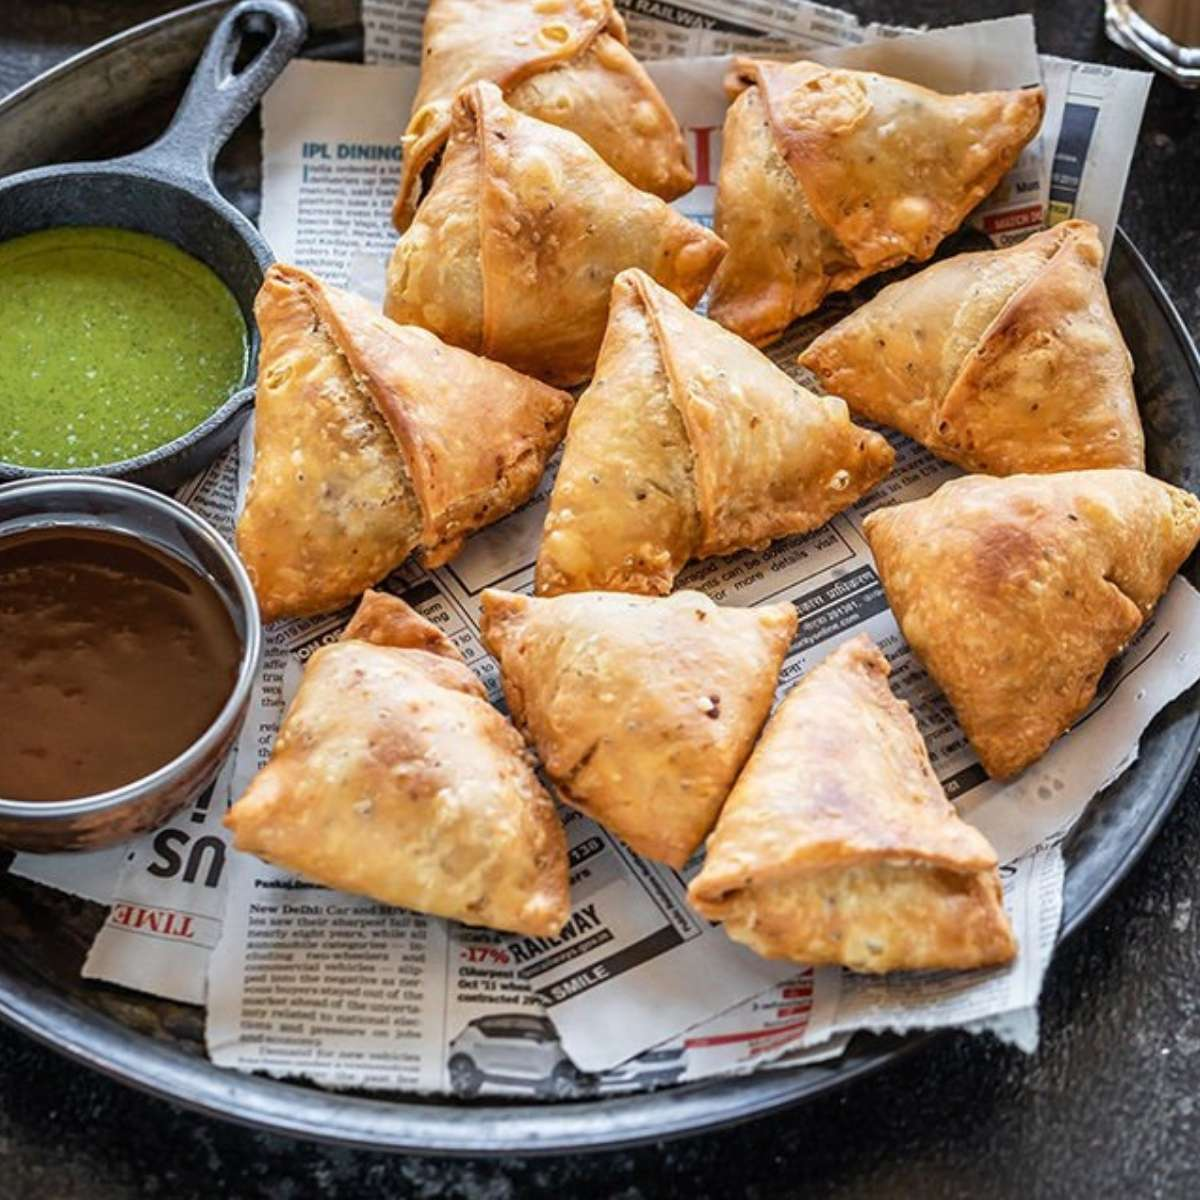 20. Samosas - DIY Cocktail Micro Wedding: Top 20 Easy Appetizers 2